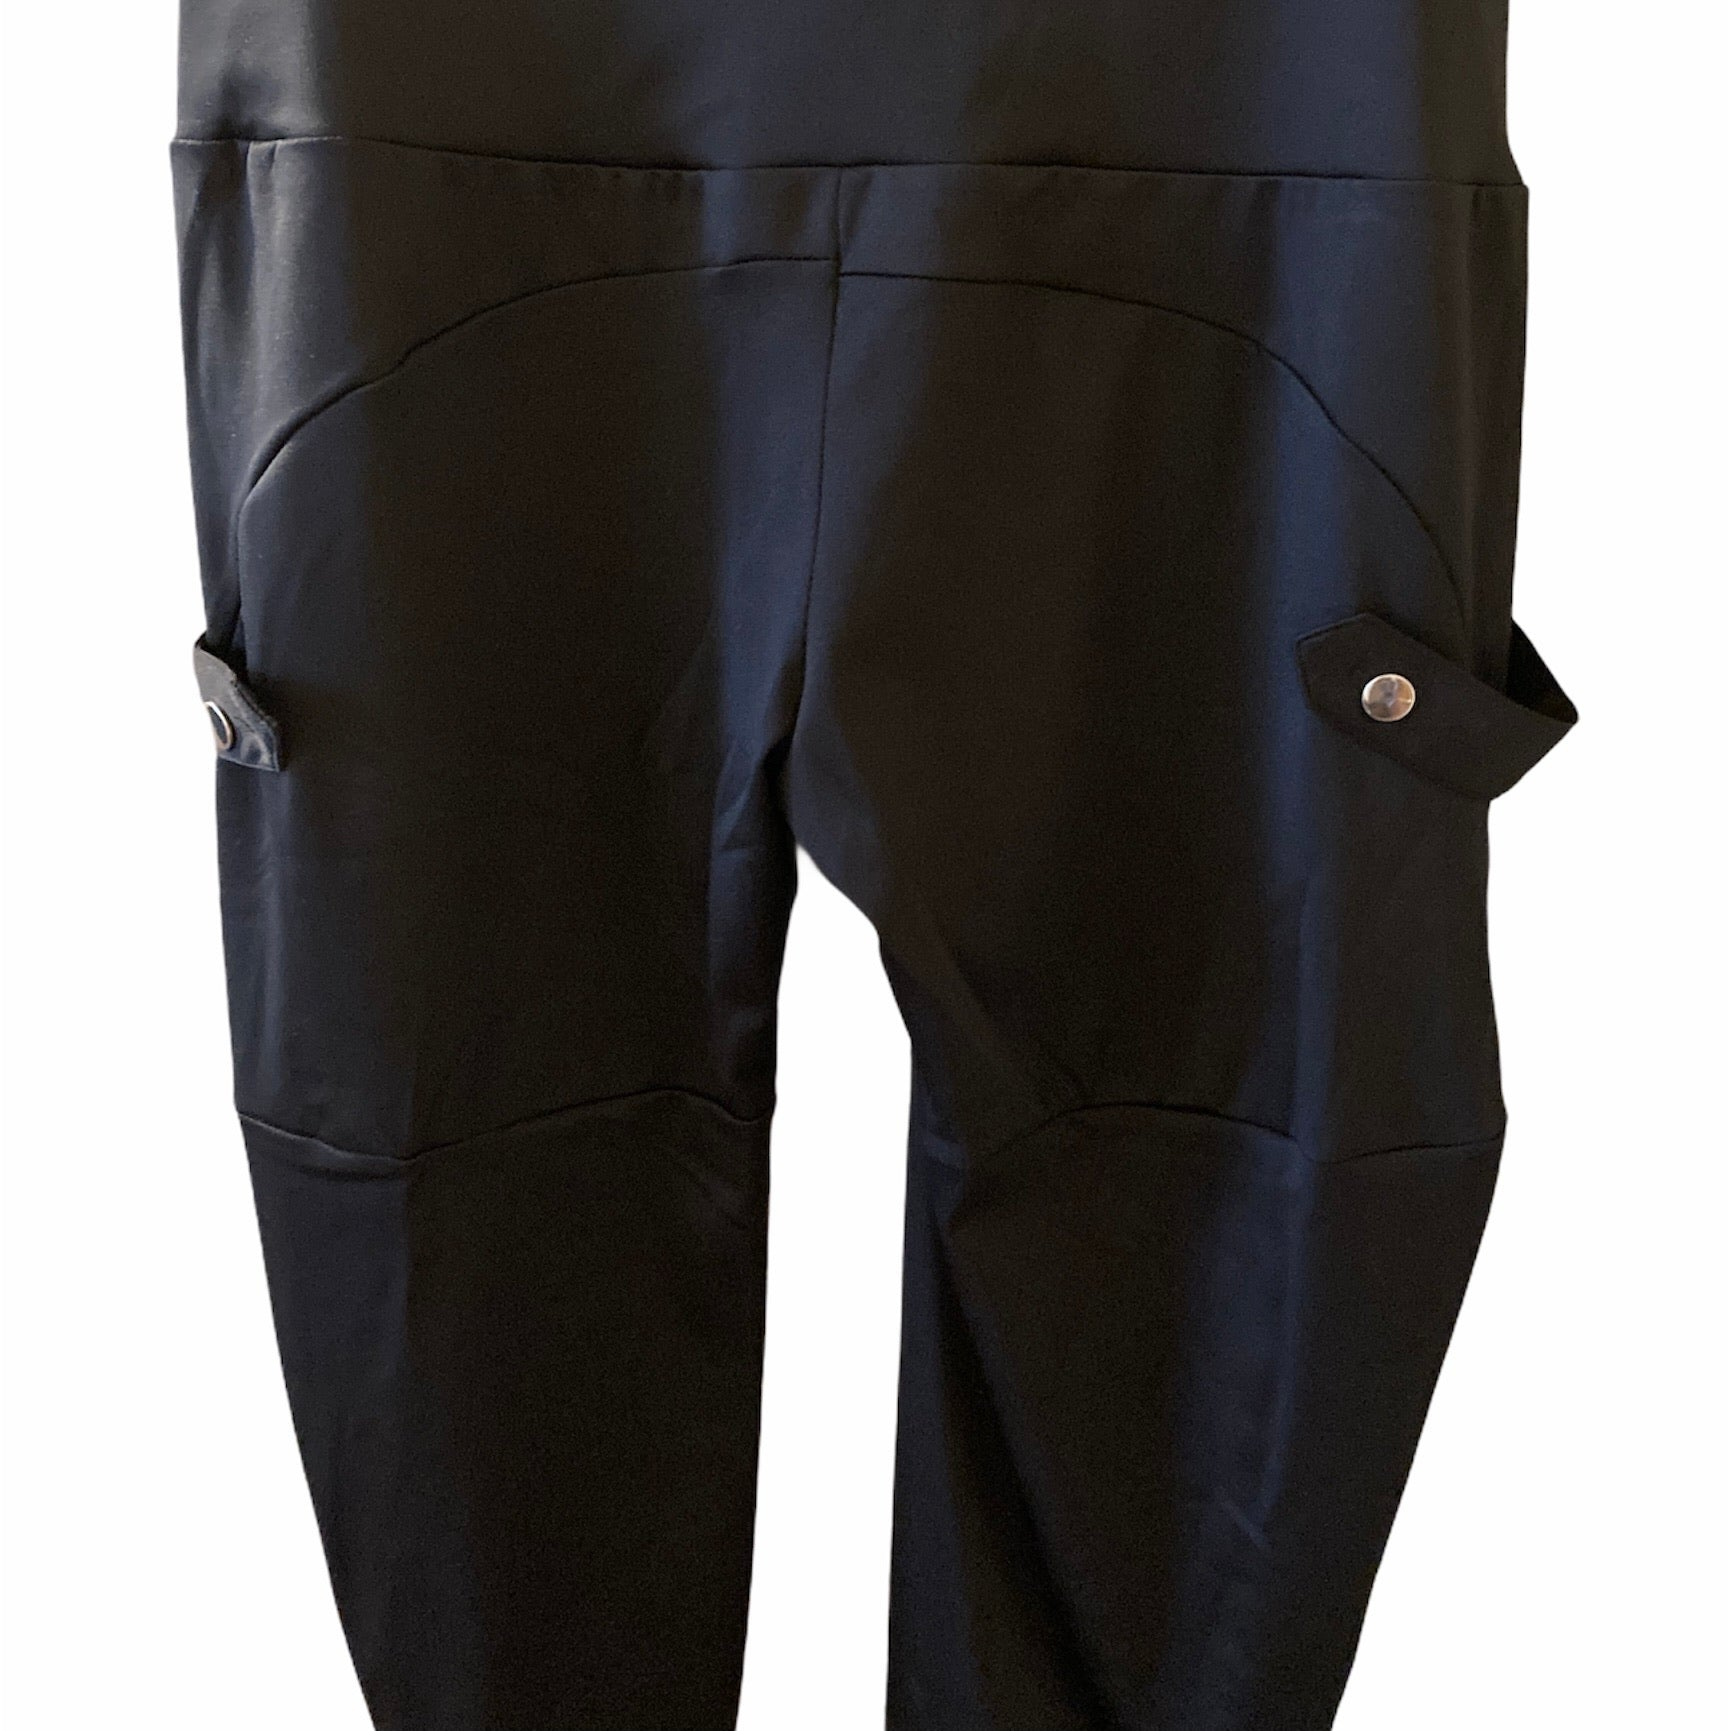 Snap Athletic Pants